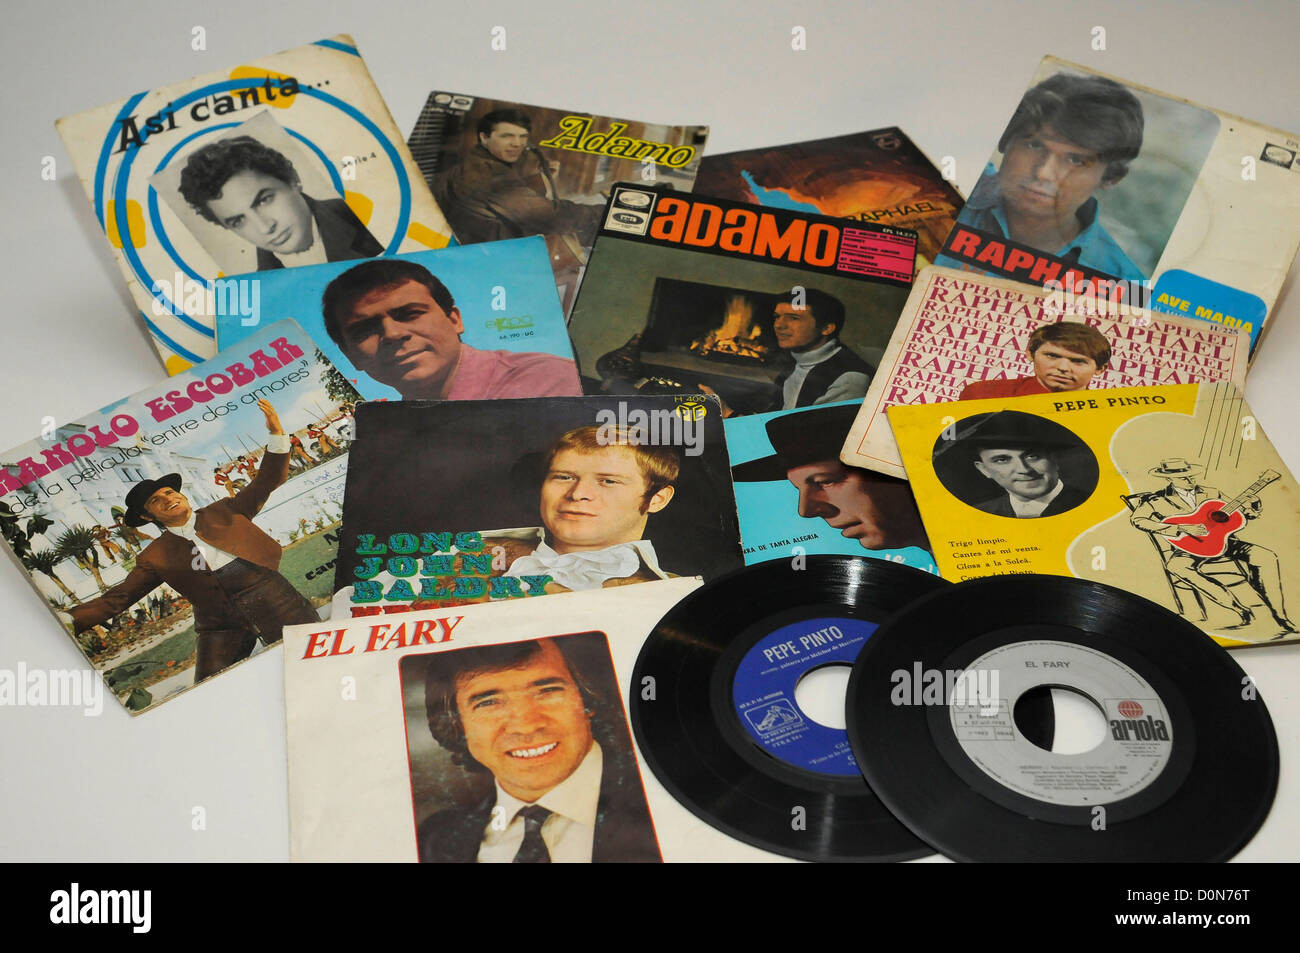 old vinyl singles disks from sixties, by Spanish and other countries singers. Collectibles. - Stock Image